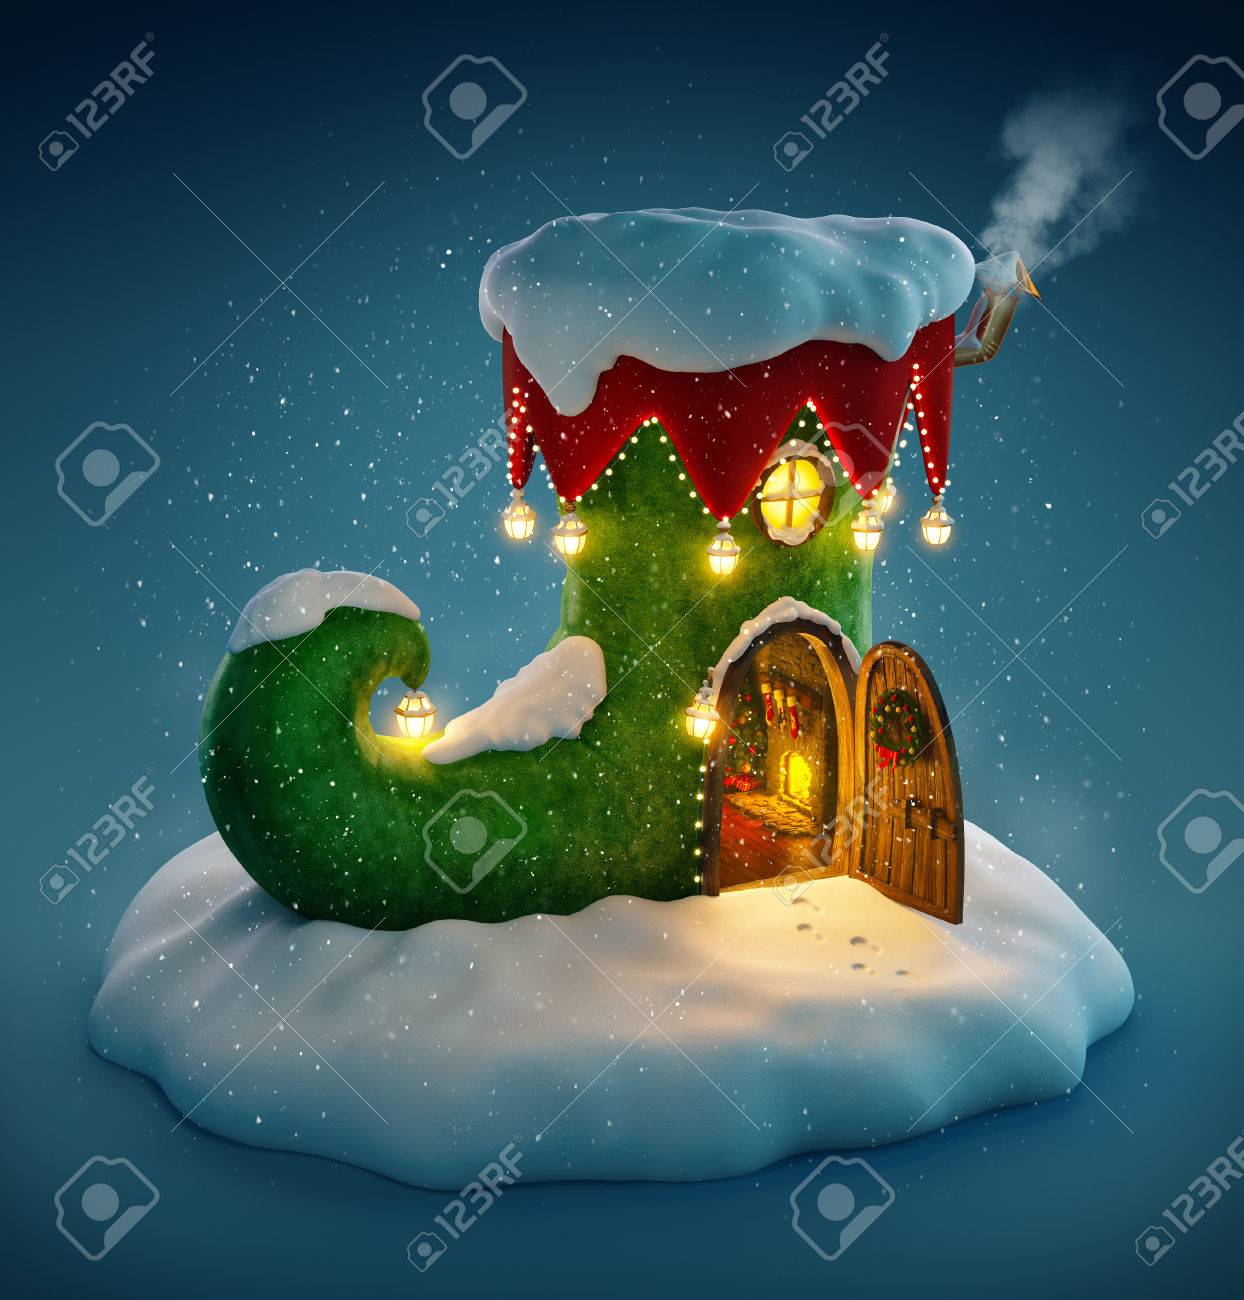 Amazing fairy house decorated at christmas in shape of elfs shoe with opened door and fireplace inside. Unusual christmas illustration. Stock Illustration - 49156231